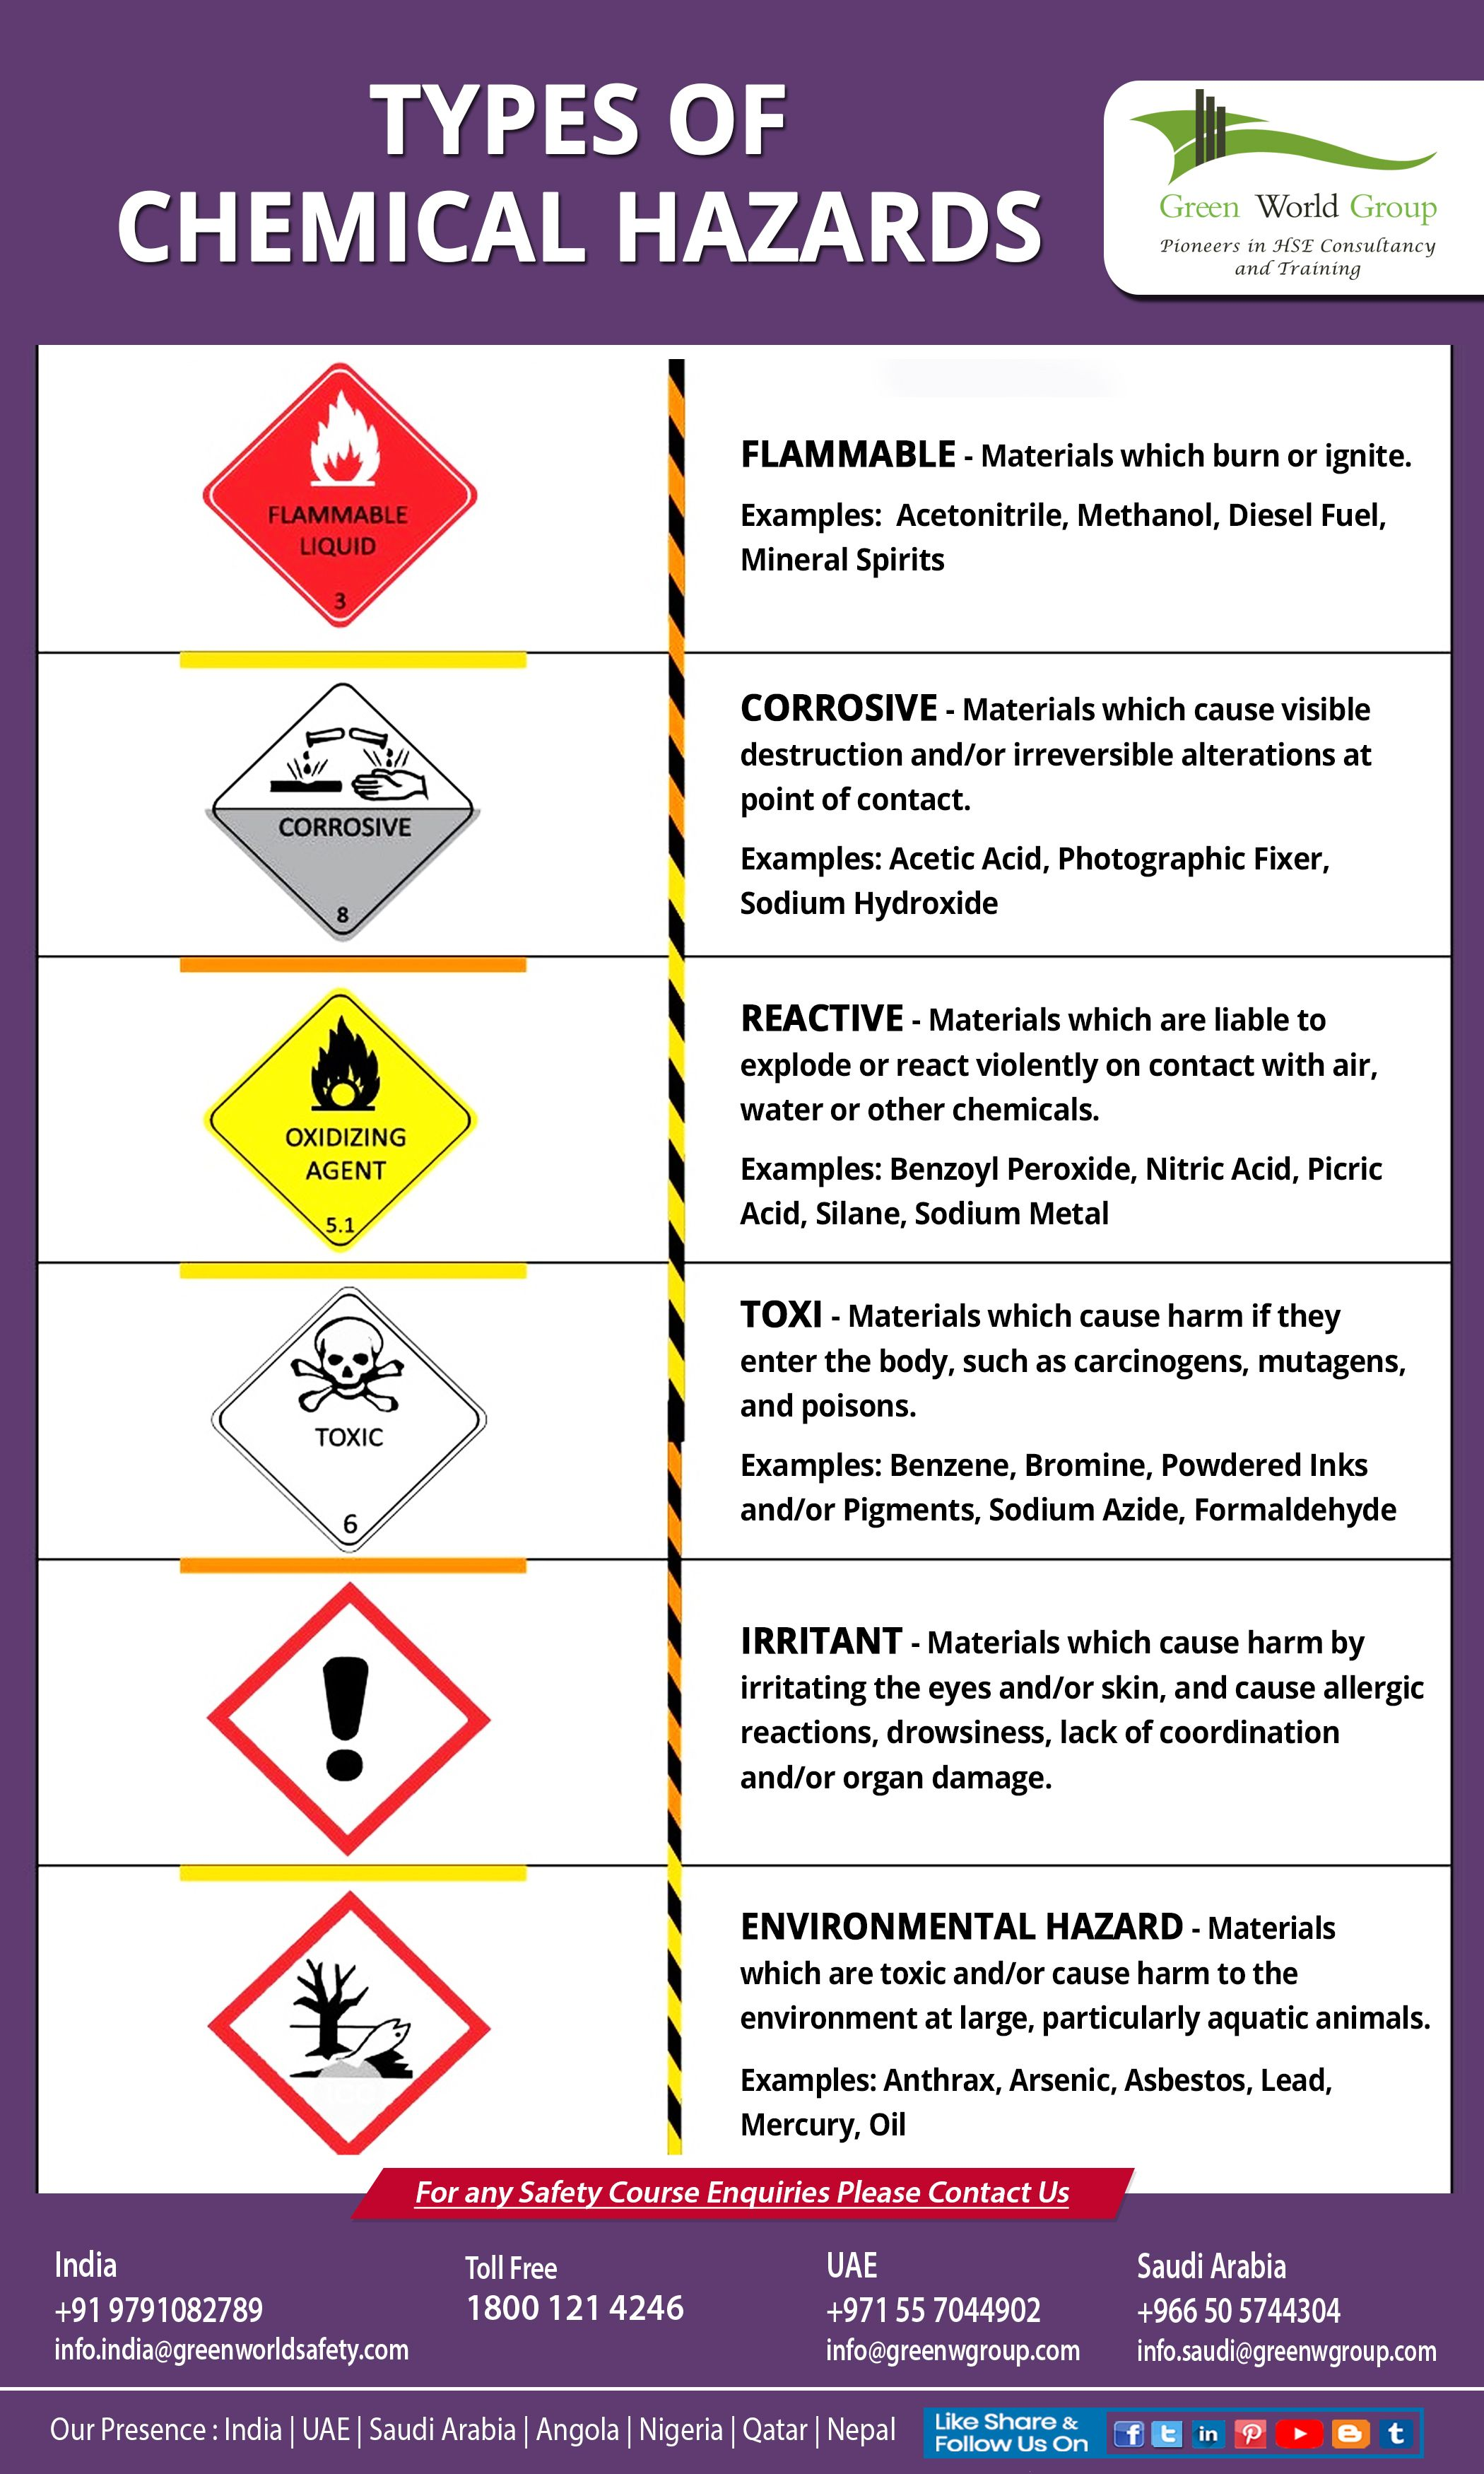 Chemical Hazards plans are written documents that outline